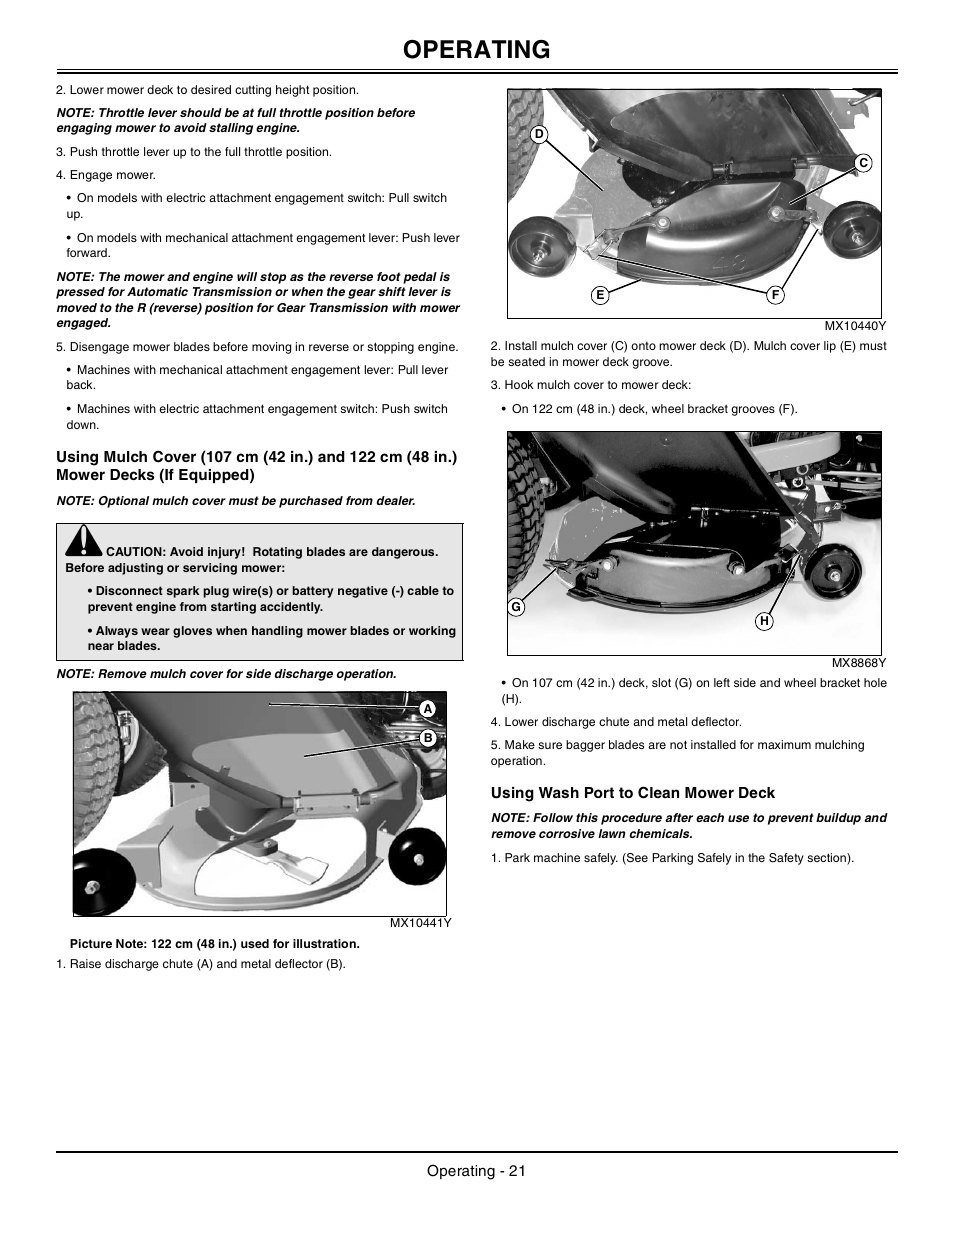 Using Wash Port To Clean Mower Deck Operating John Deere Tractor 100 Series X23532 J0 User Manual Page 22 56